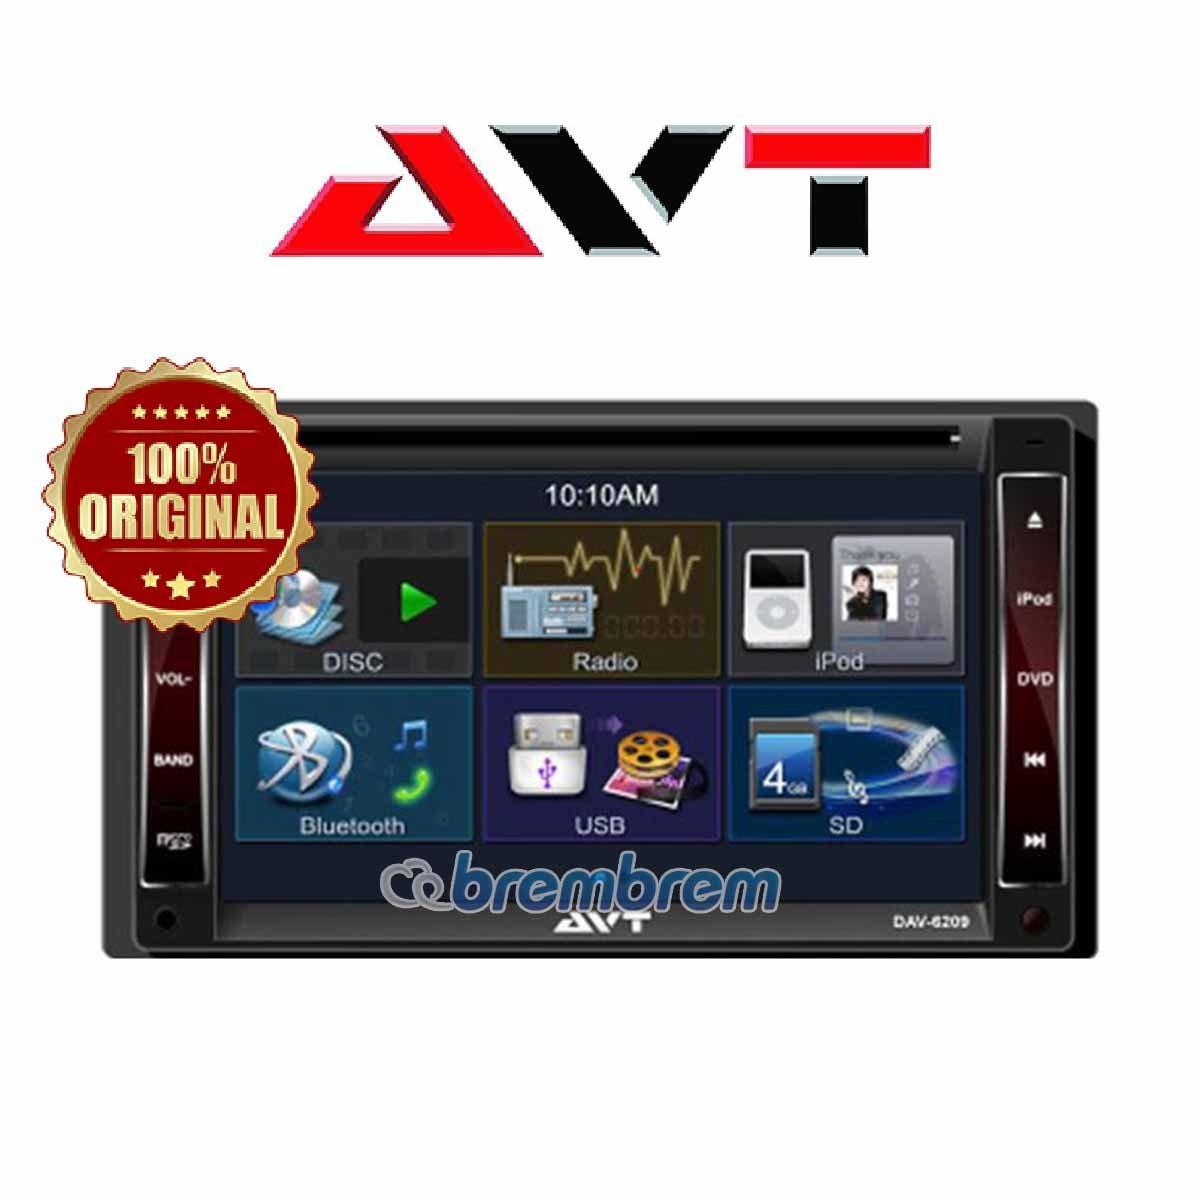 AVT DAV 6209 - HEADUNIT DOUBLE DIN